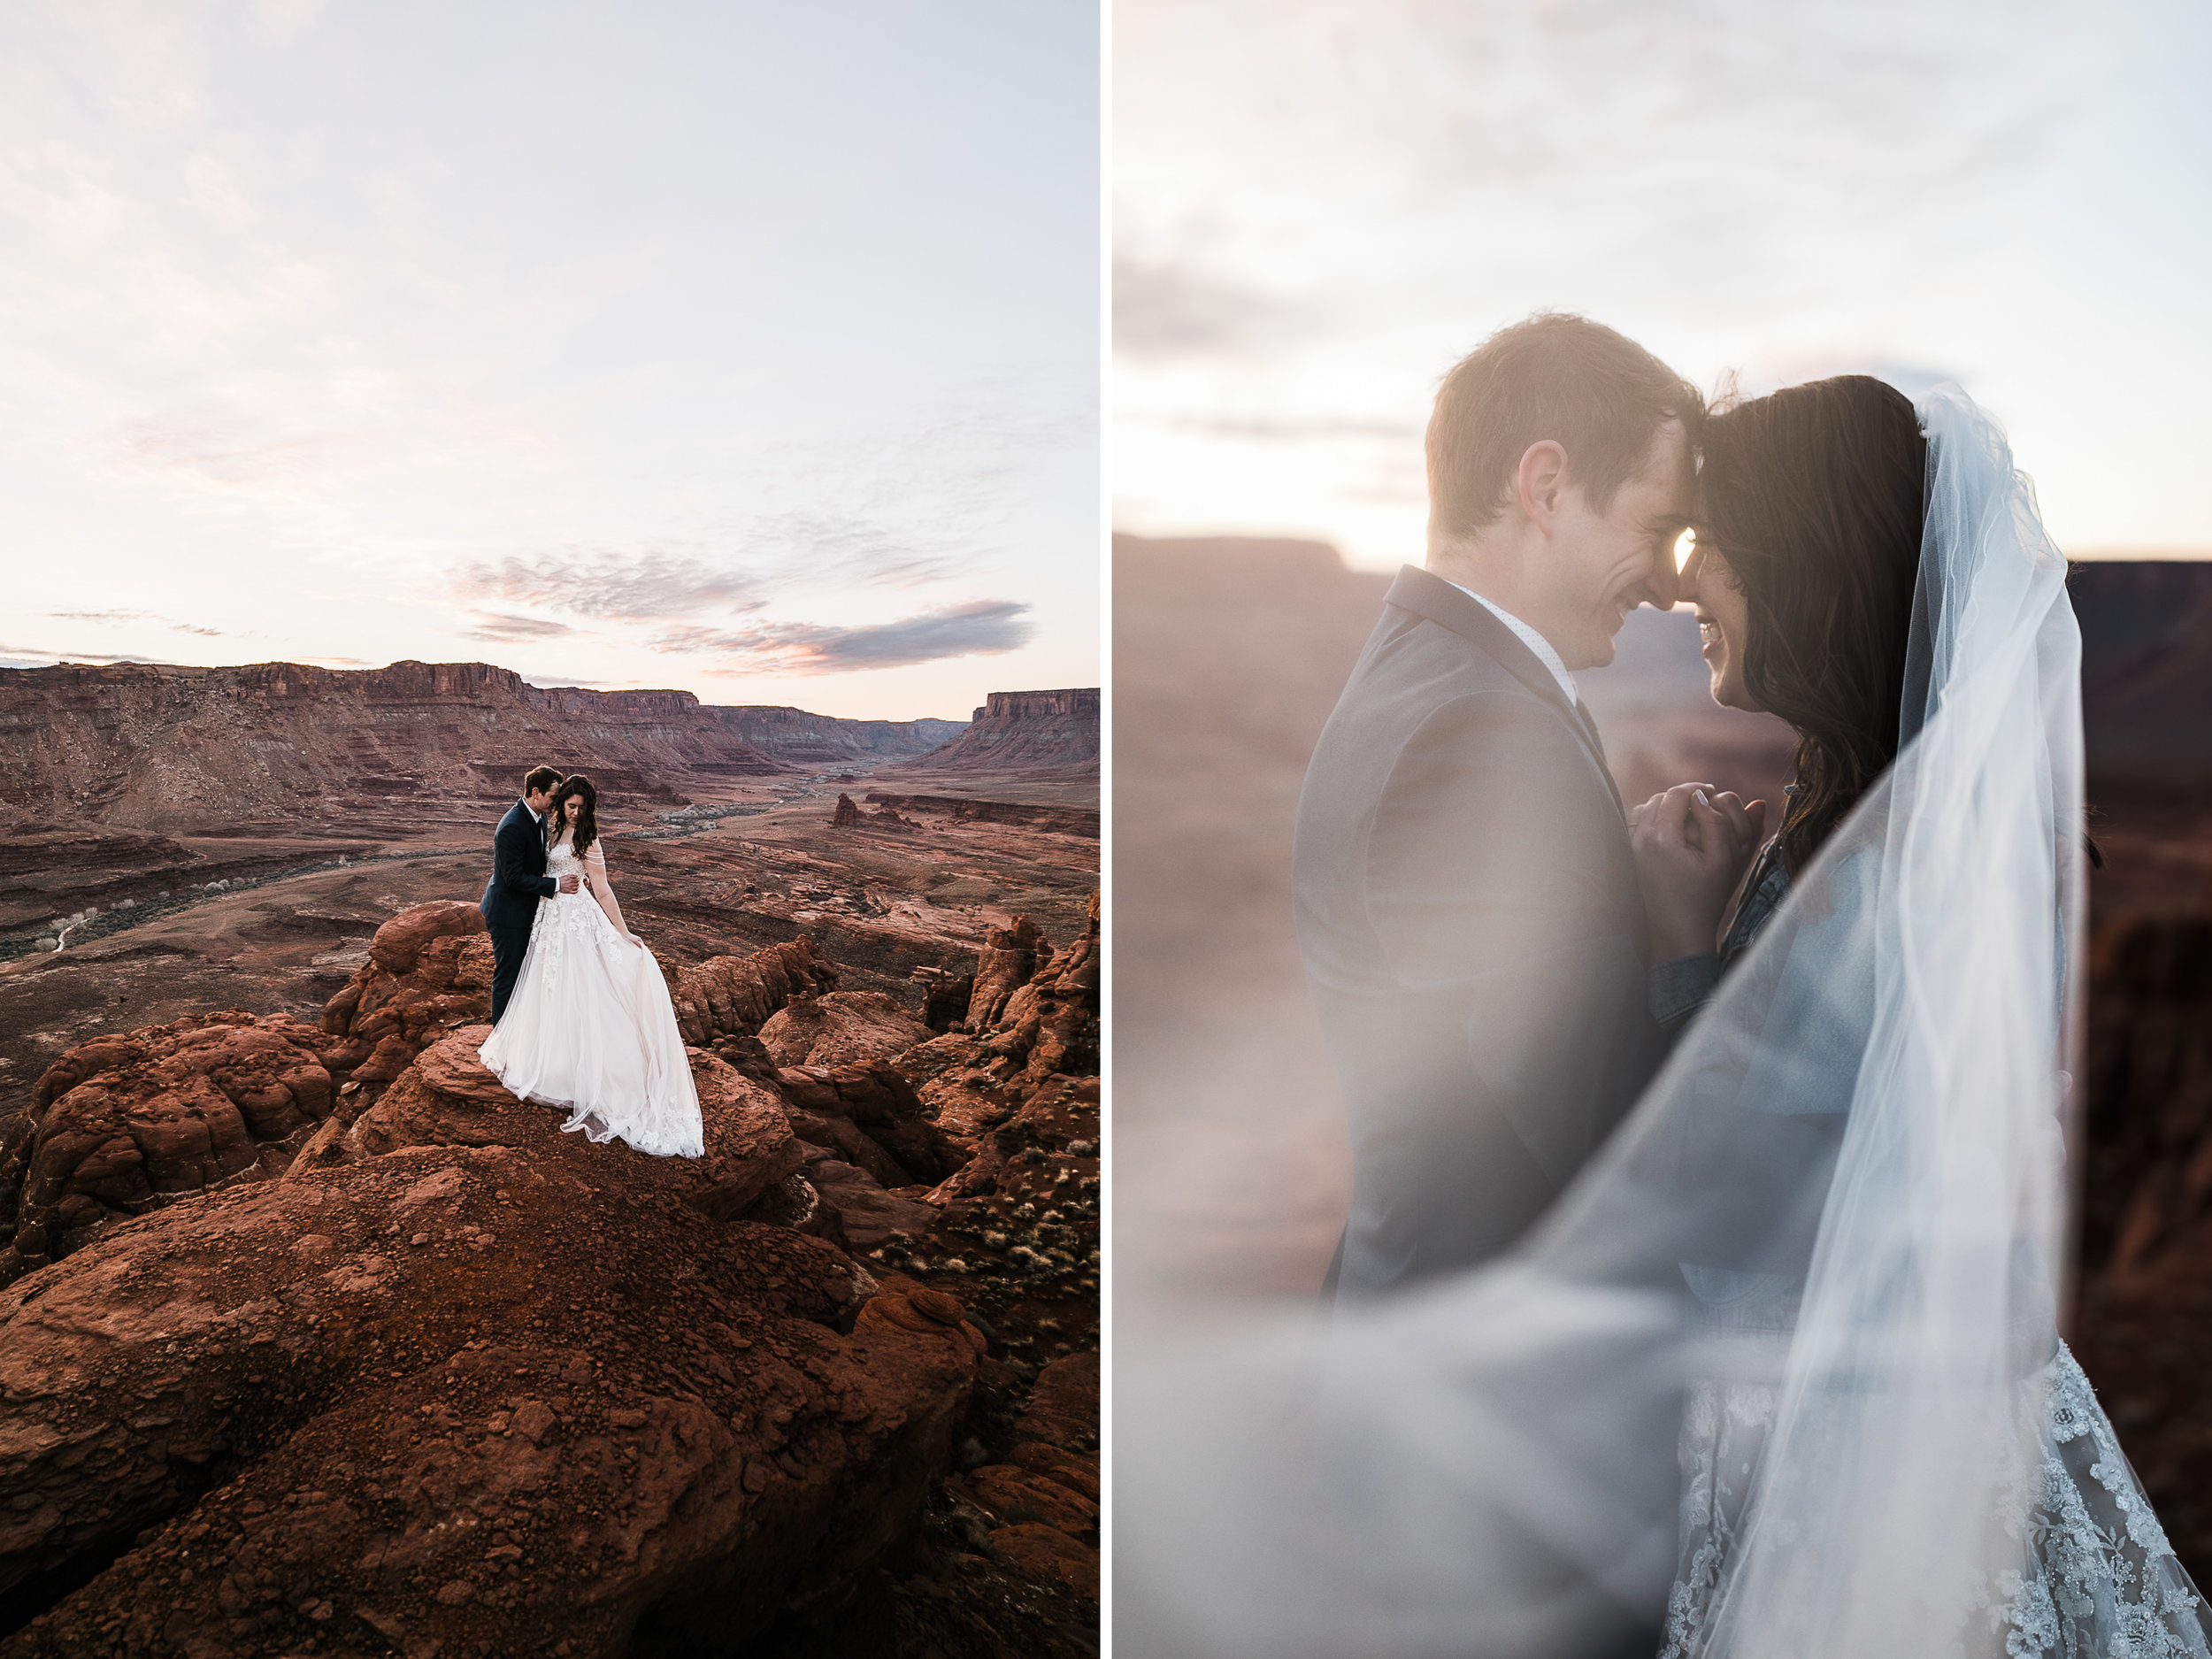 We had so much fun riding the jeep to the top of this canyon for the sunrise elopement photo session!